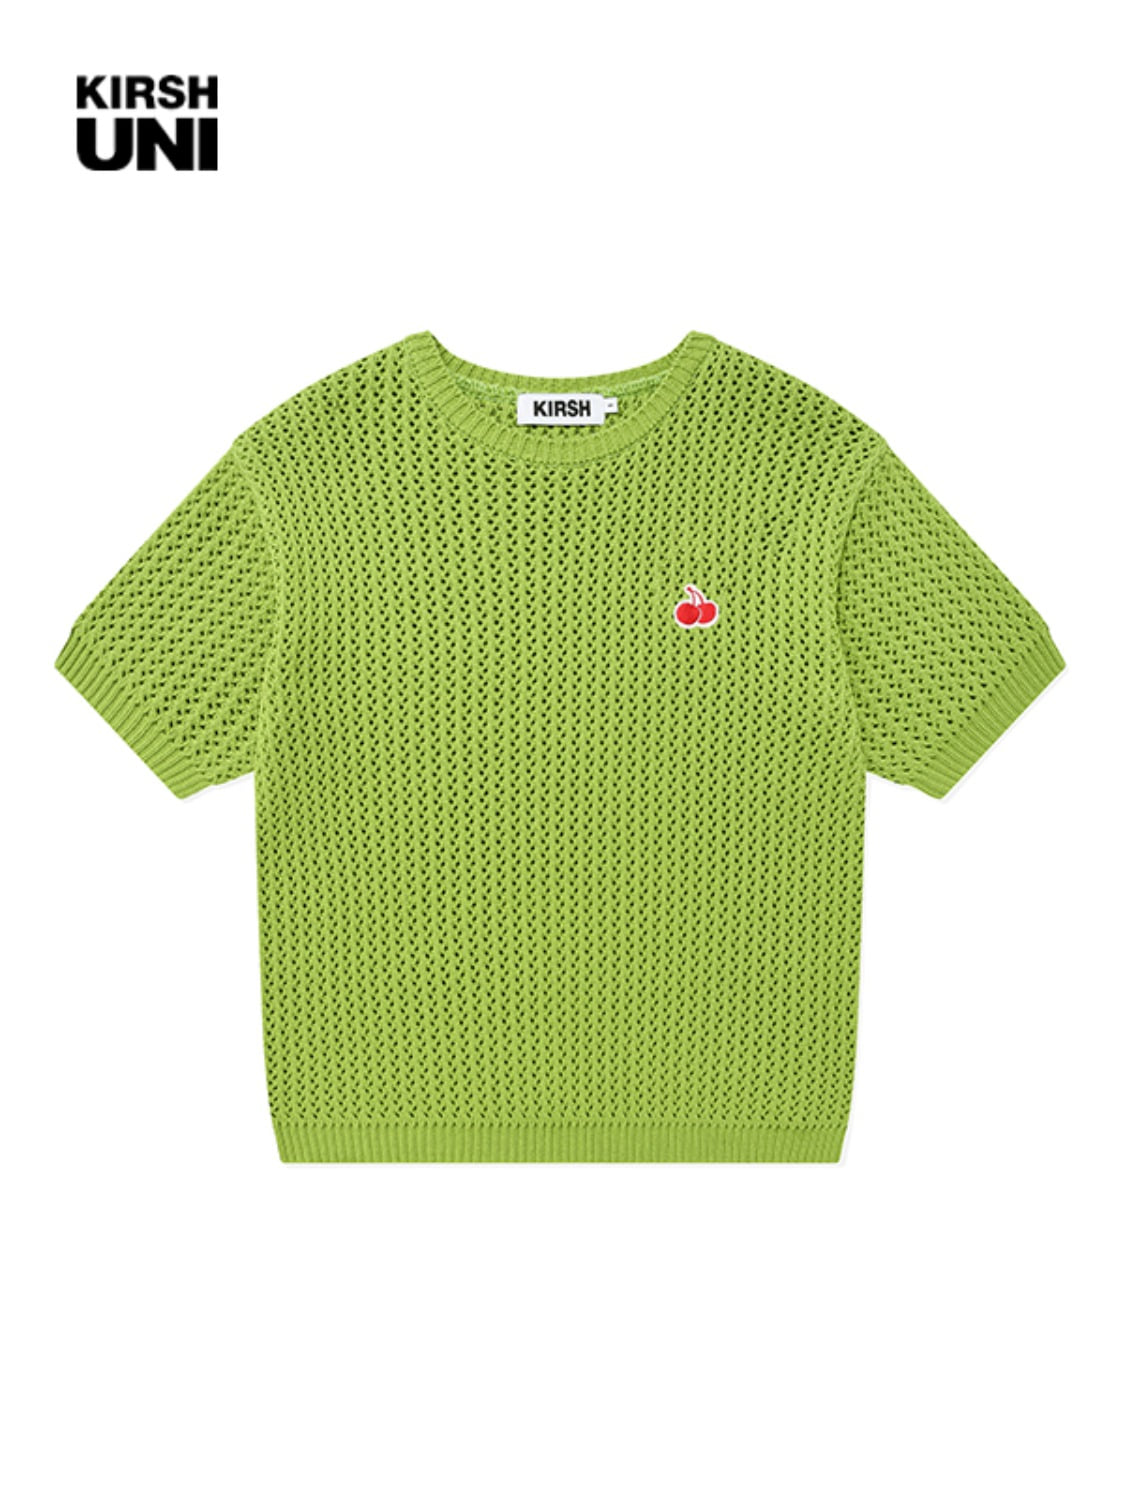 UNI SMALL CHERRY SHORT SLEEVED KNIT KS [GREEN]